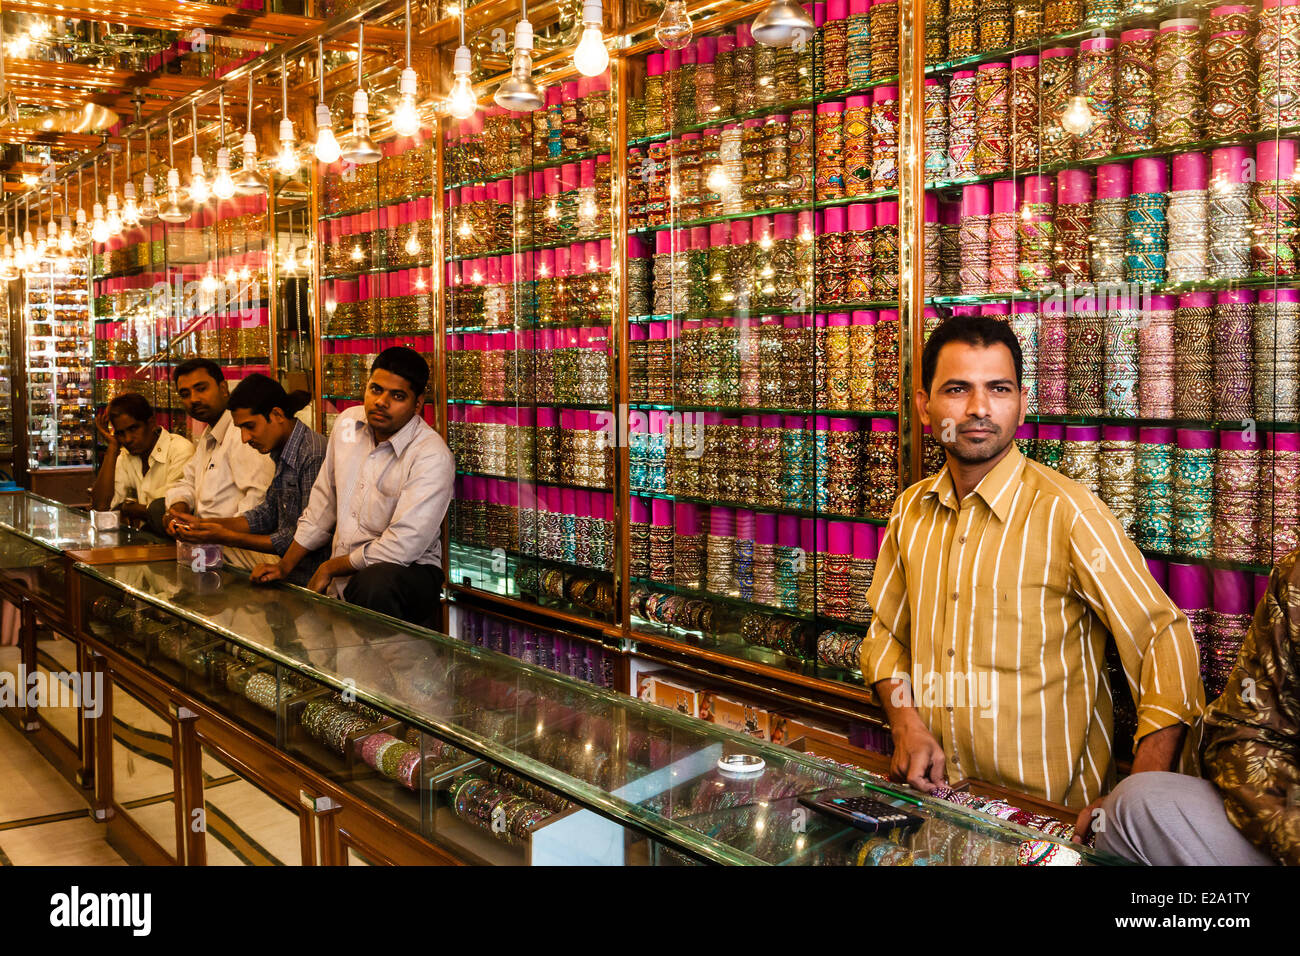 India, Andhra Pradesh state, Hyderabad, bracelets shop in Laad bazar - Stock Image